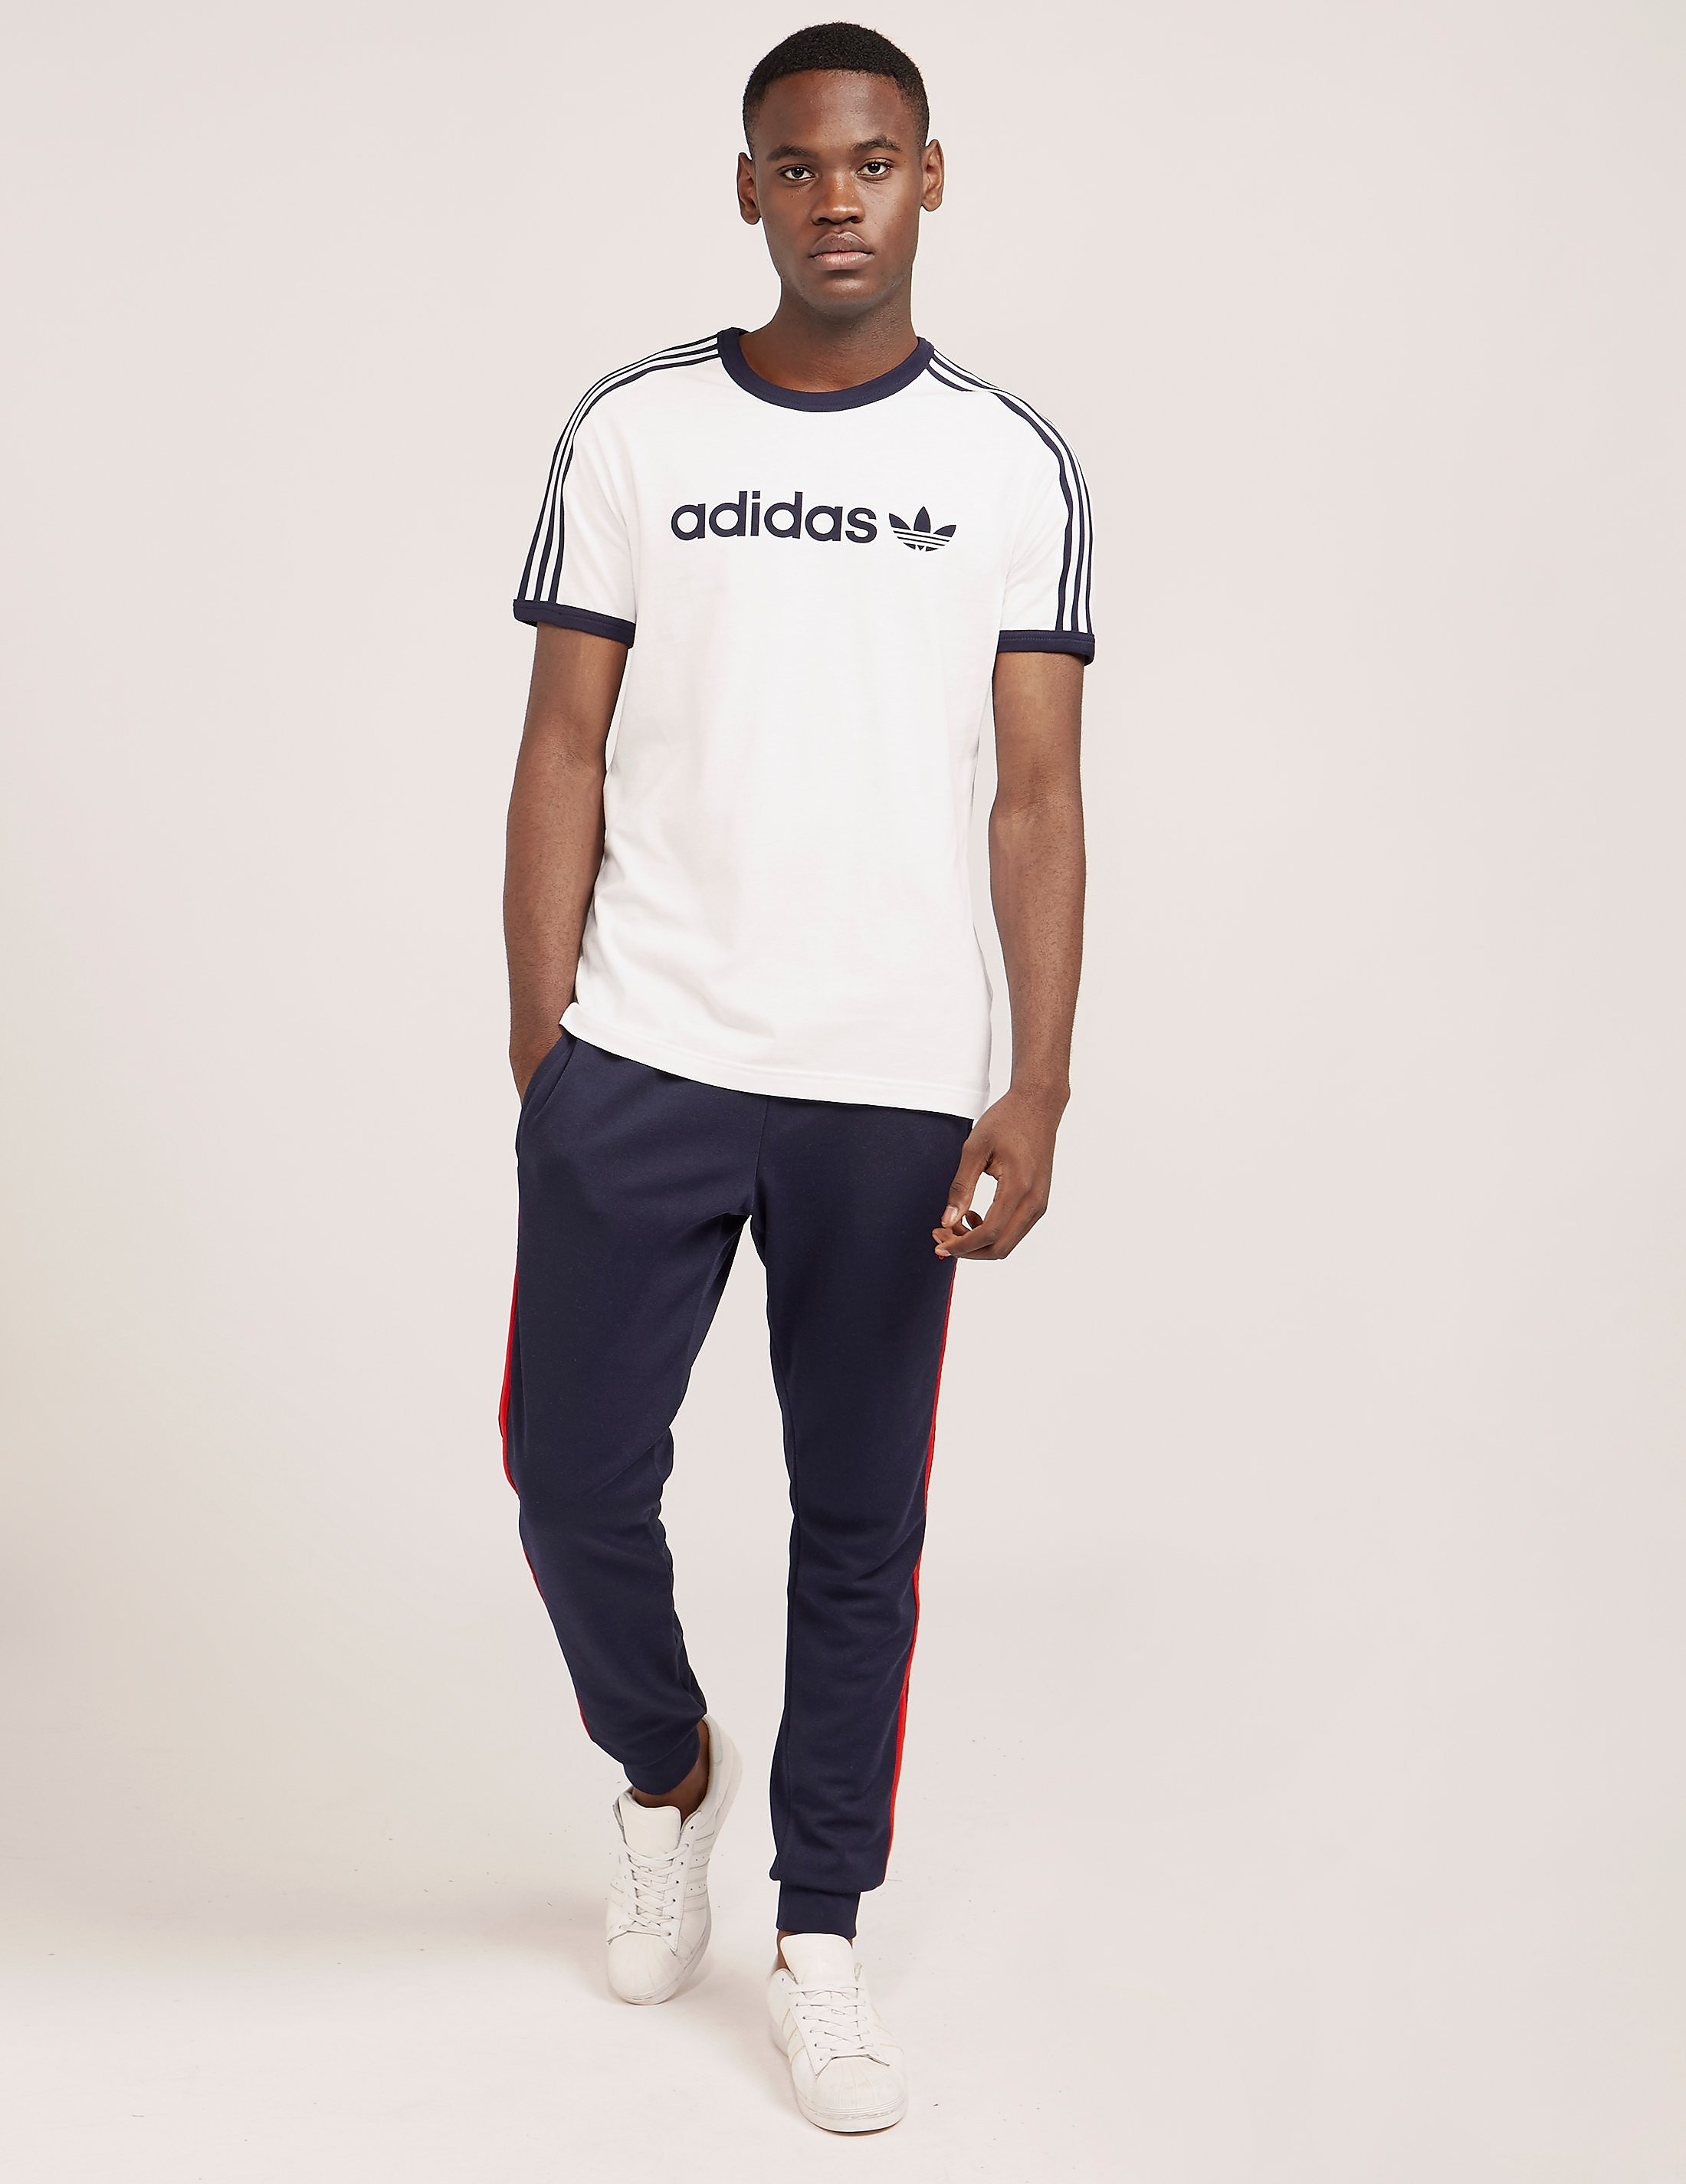 adidas Originals Linear Short Sleeve T-Shirt